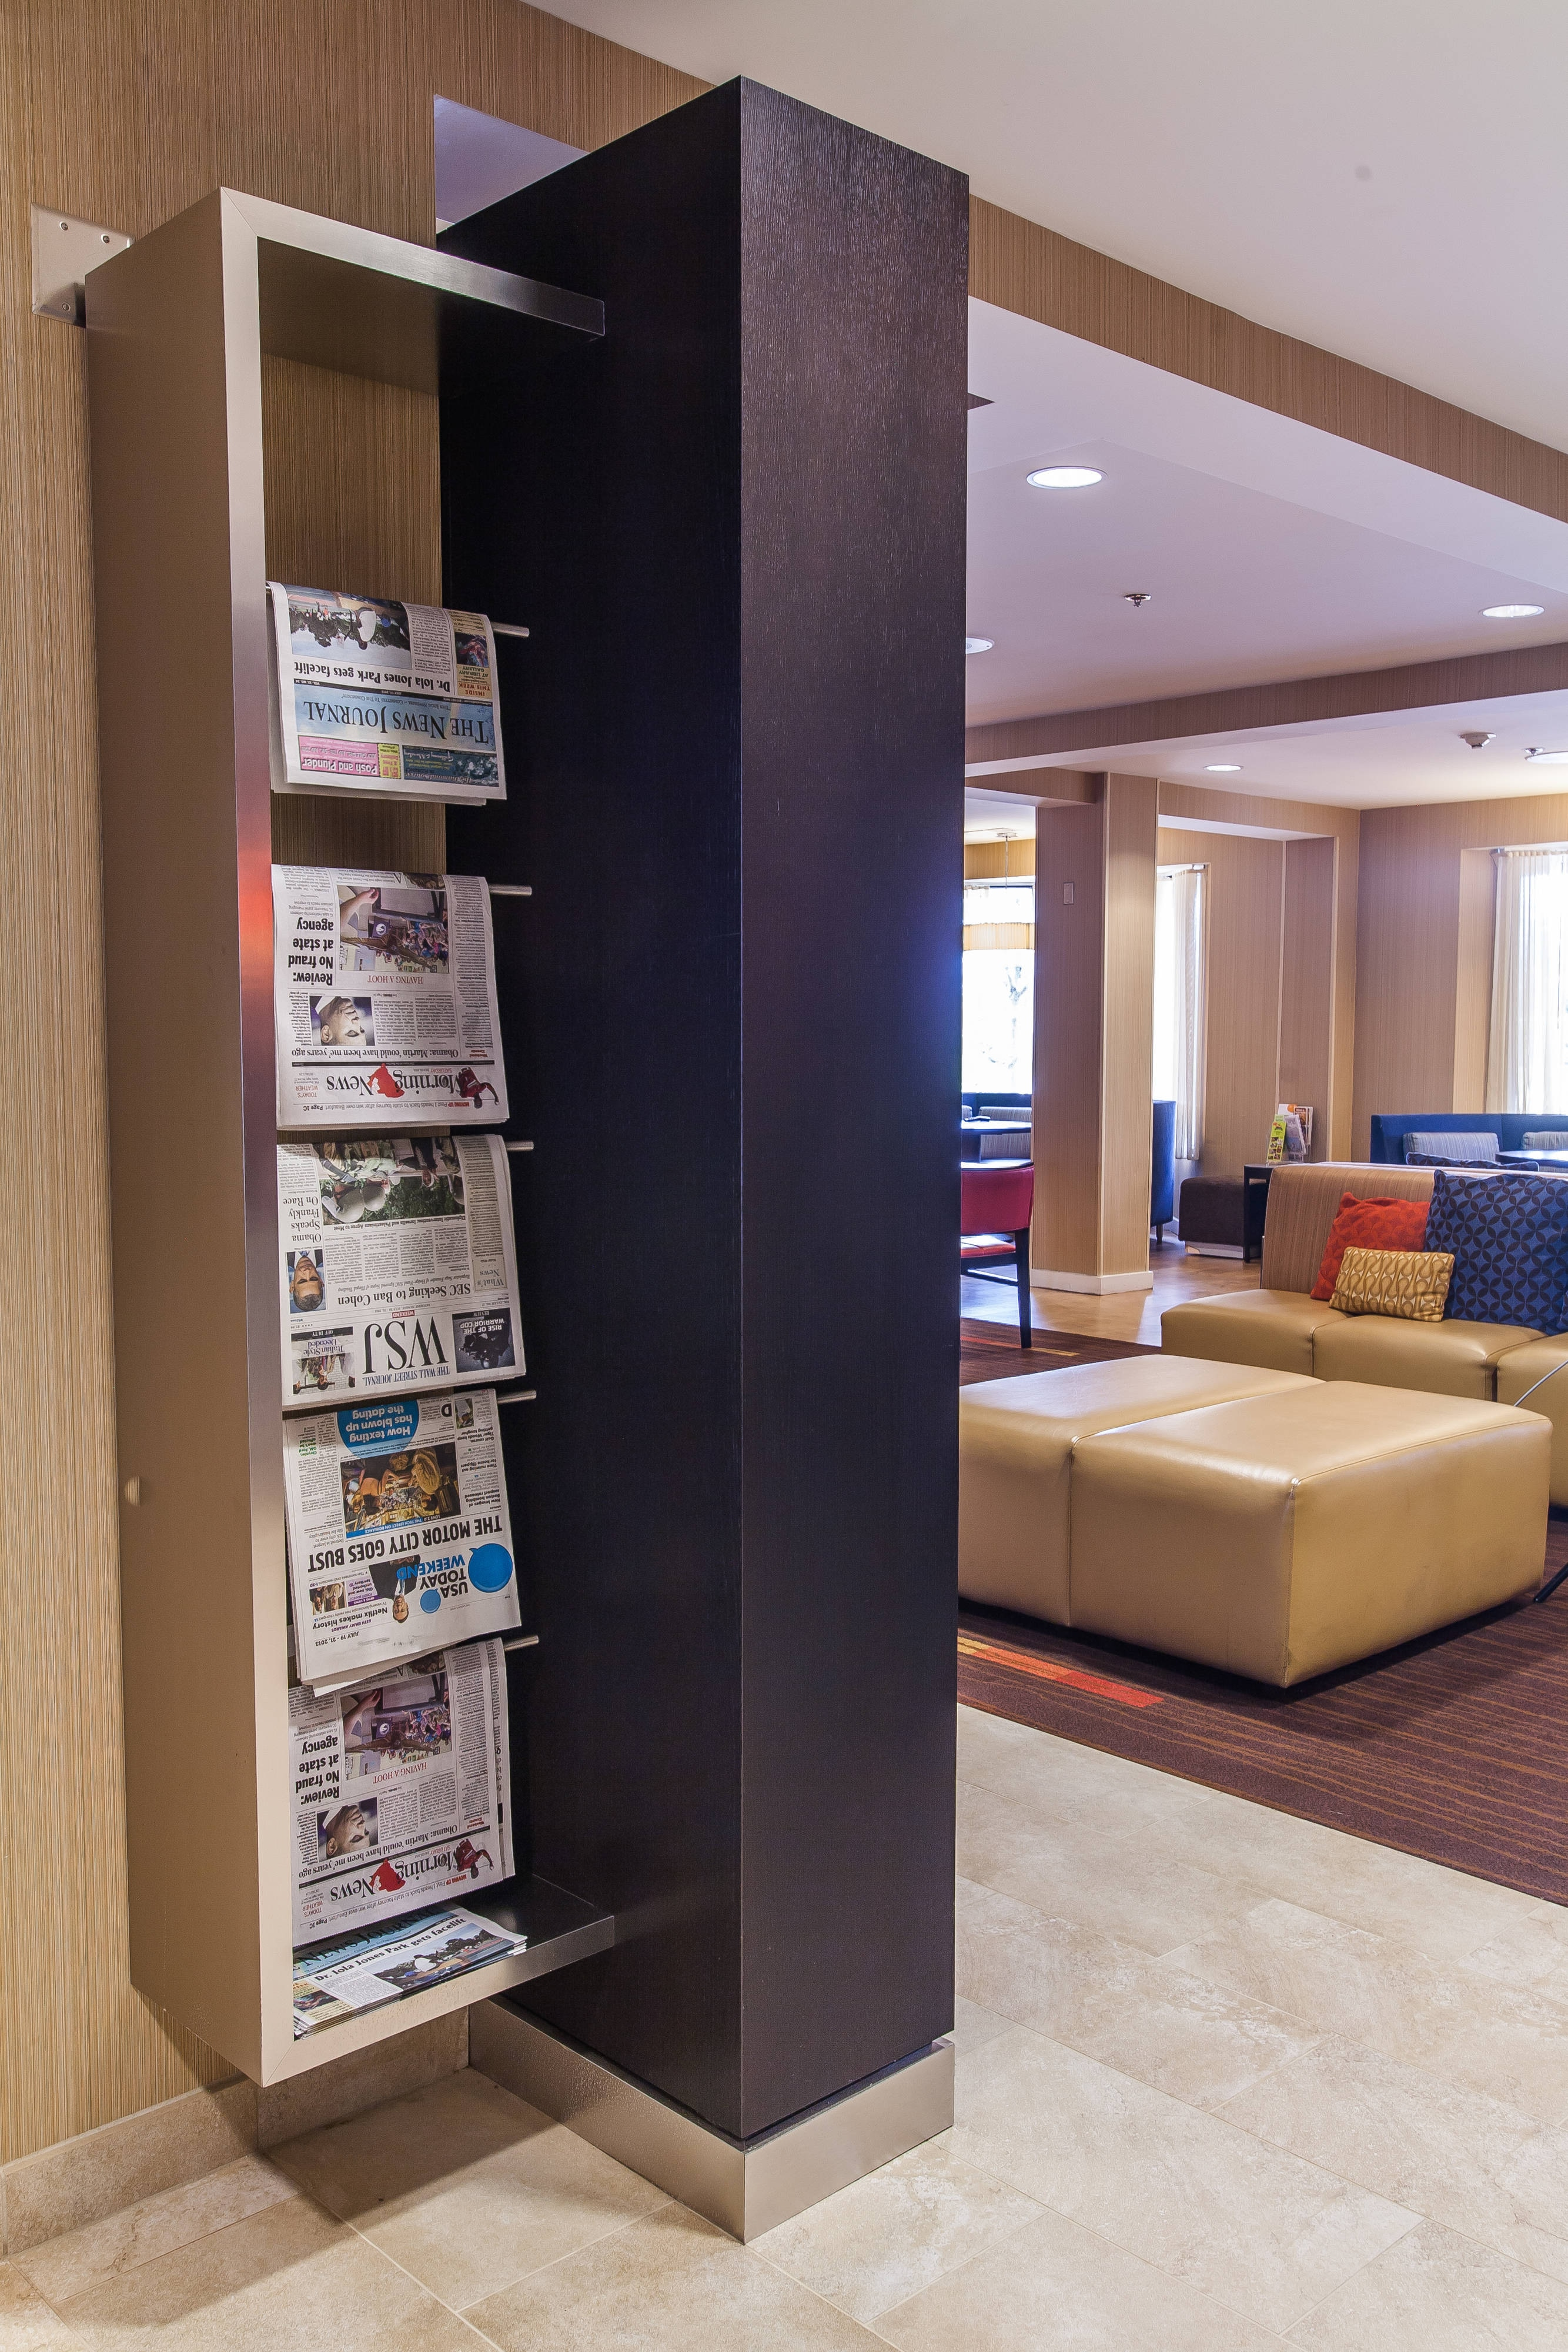 Courtyard Marriott Florence Complimentary Newspapers